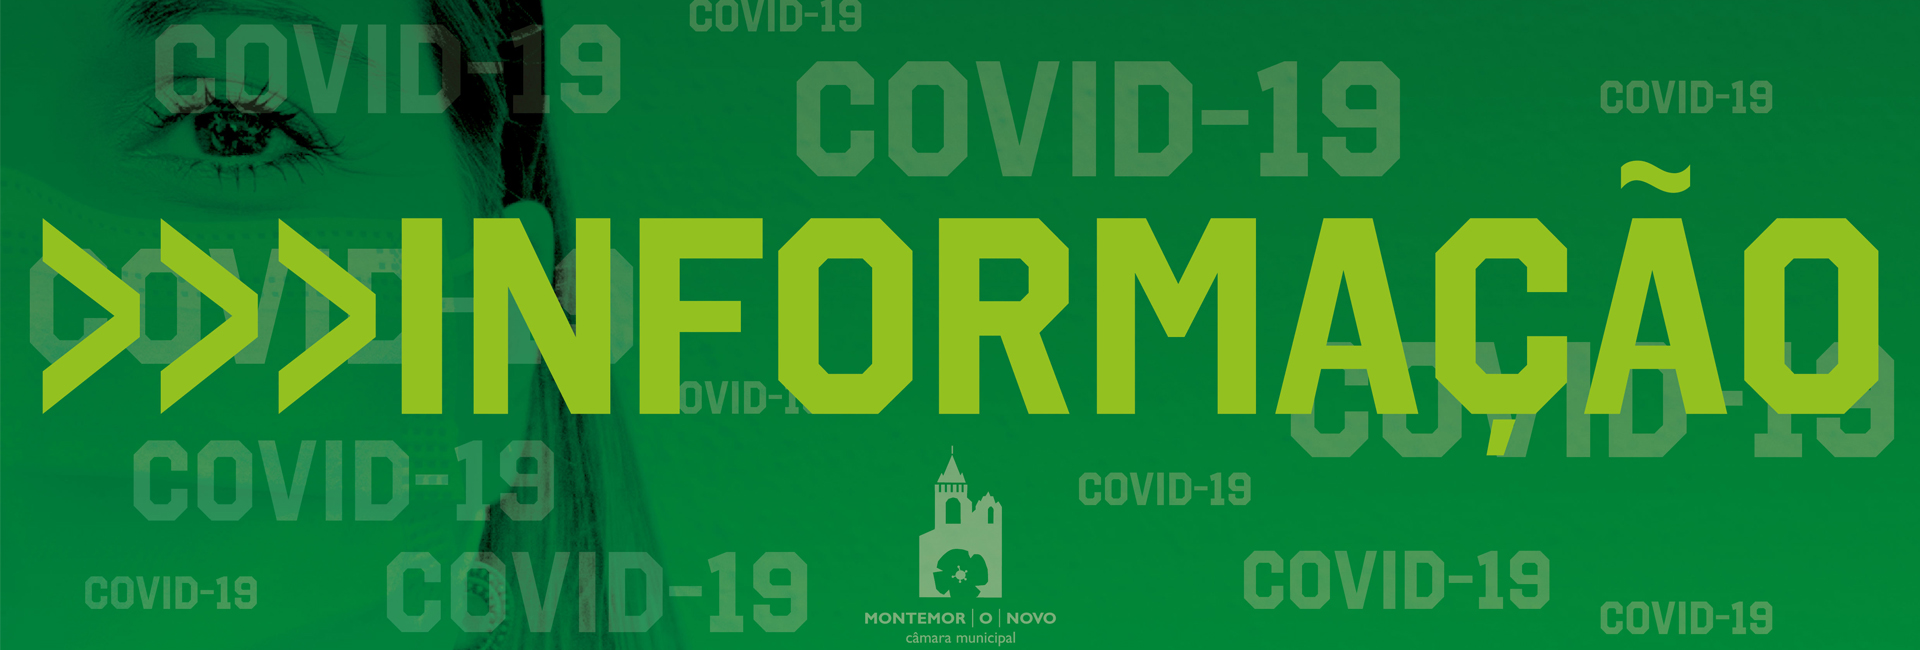 banner_covid_verde copy